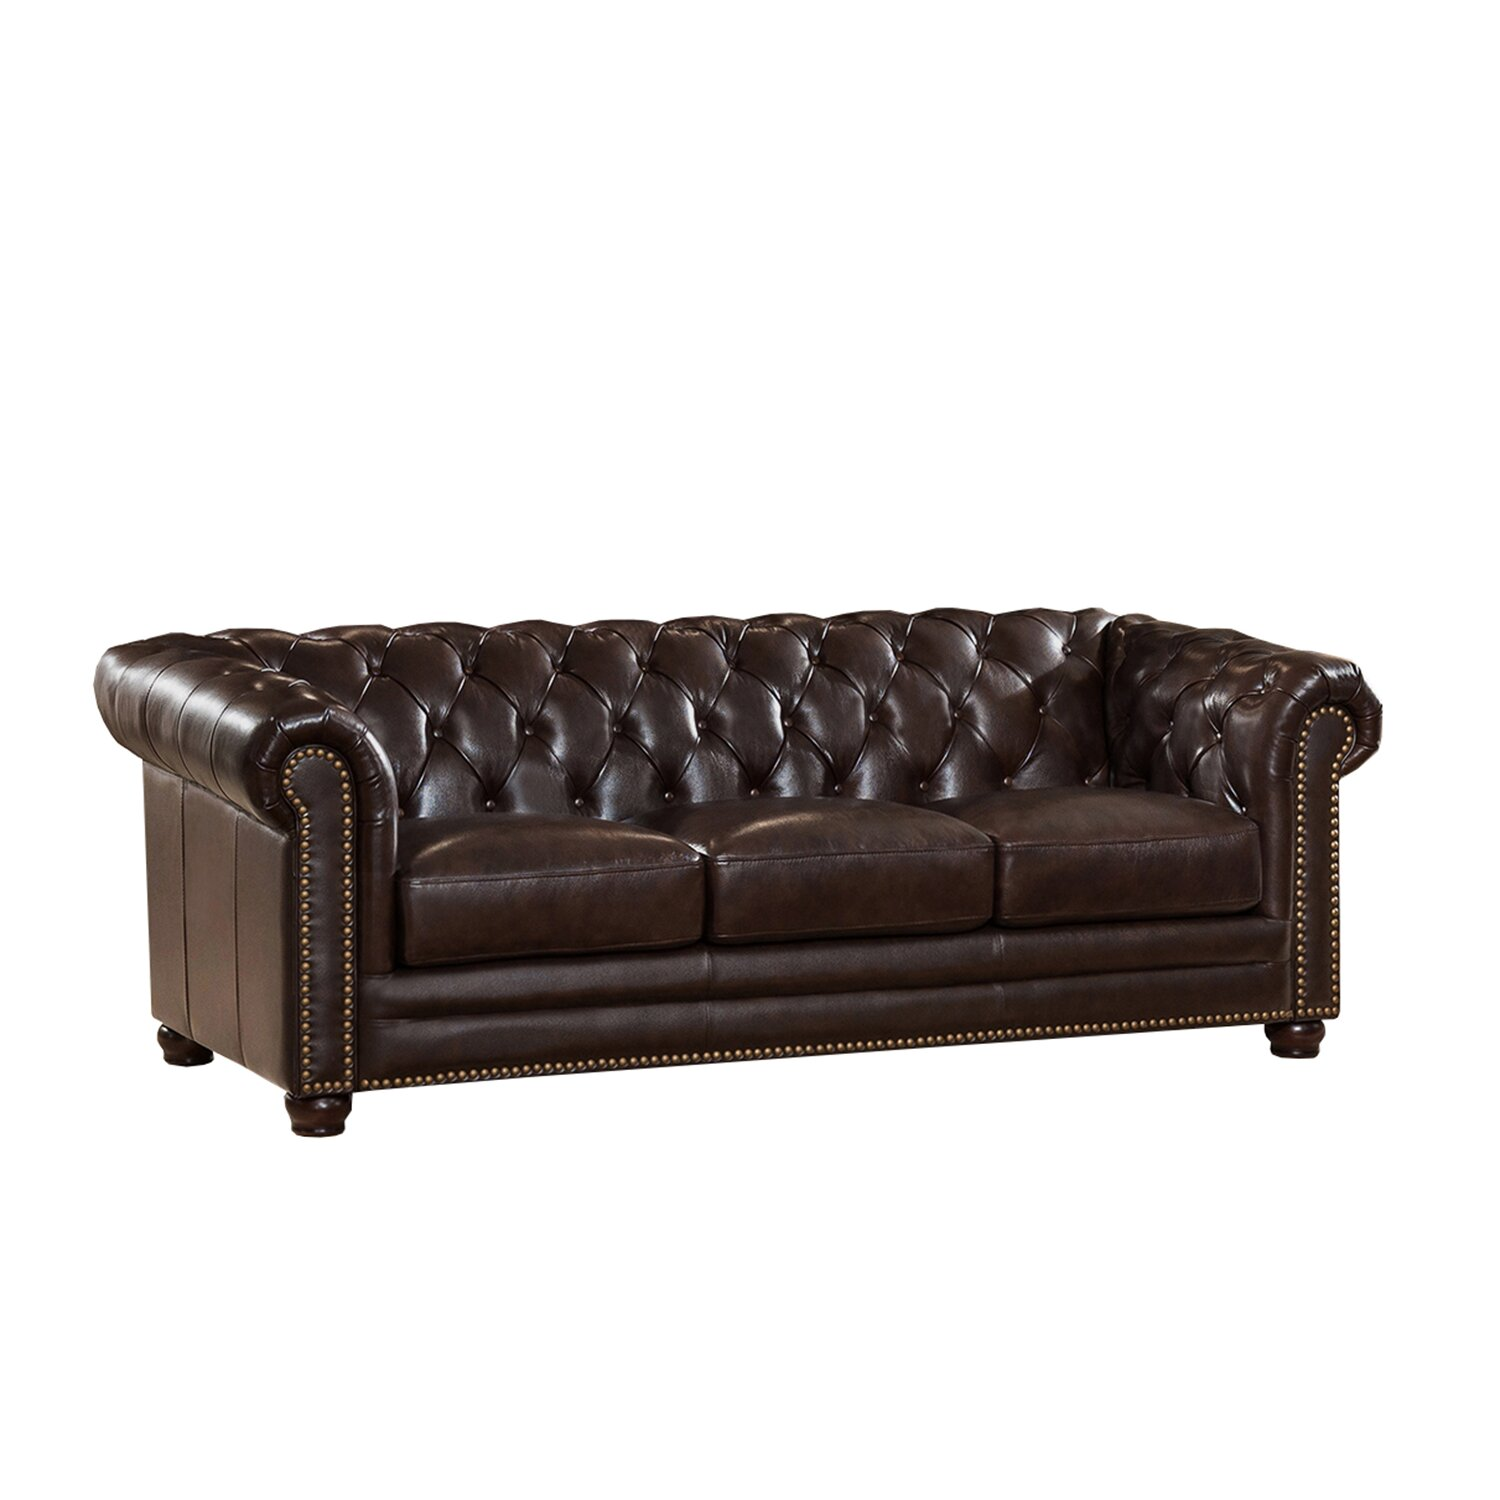 Amax Kensington Top Grain Leather Chesterfield Sofa Wayfair